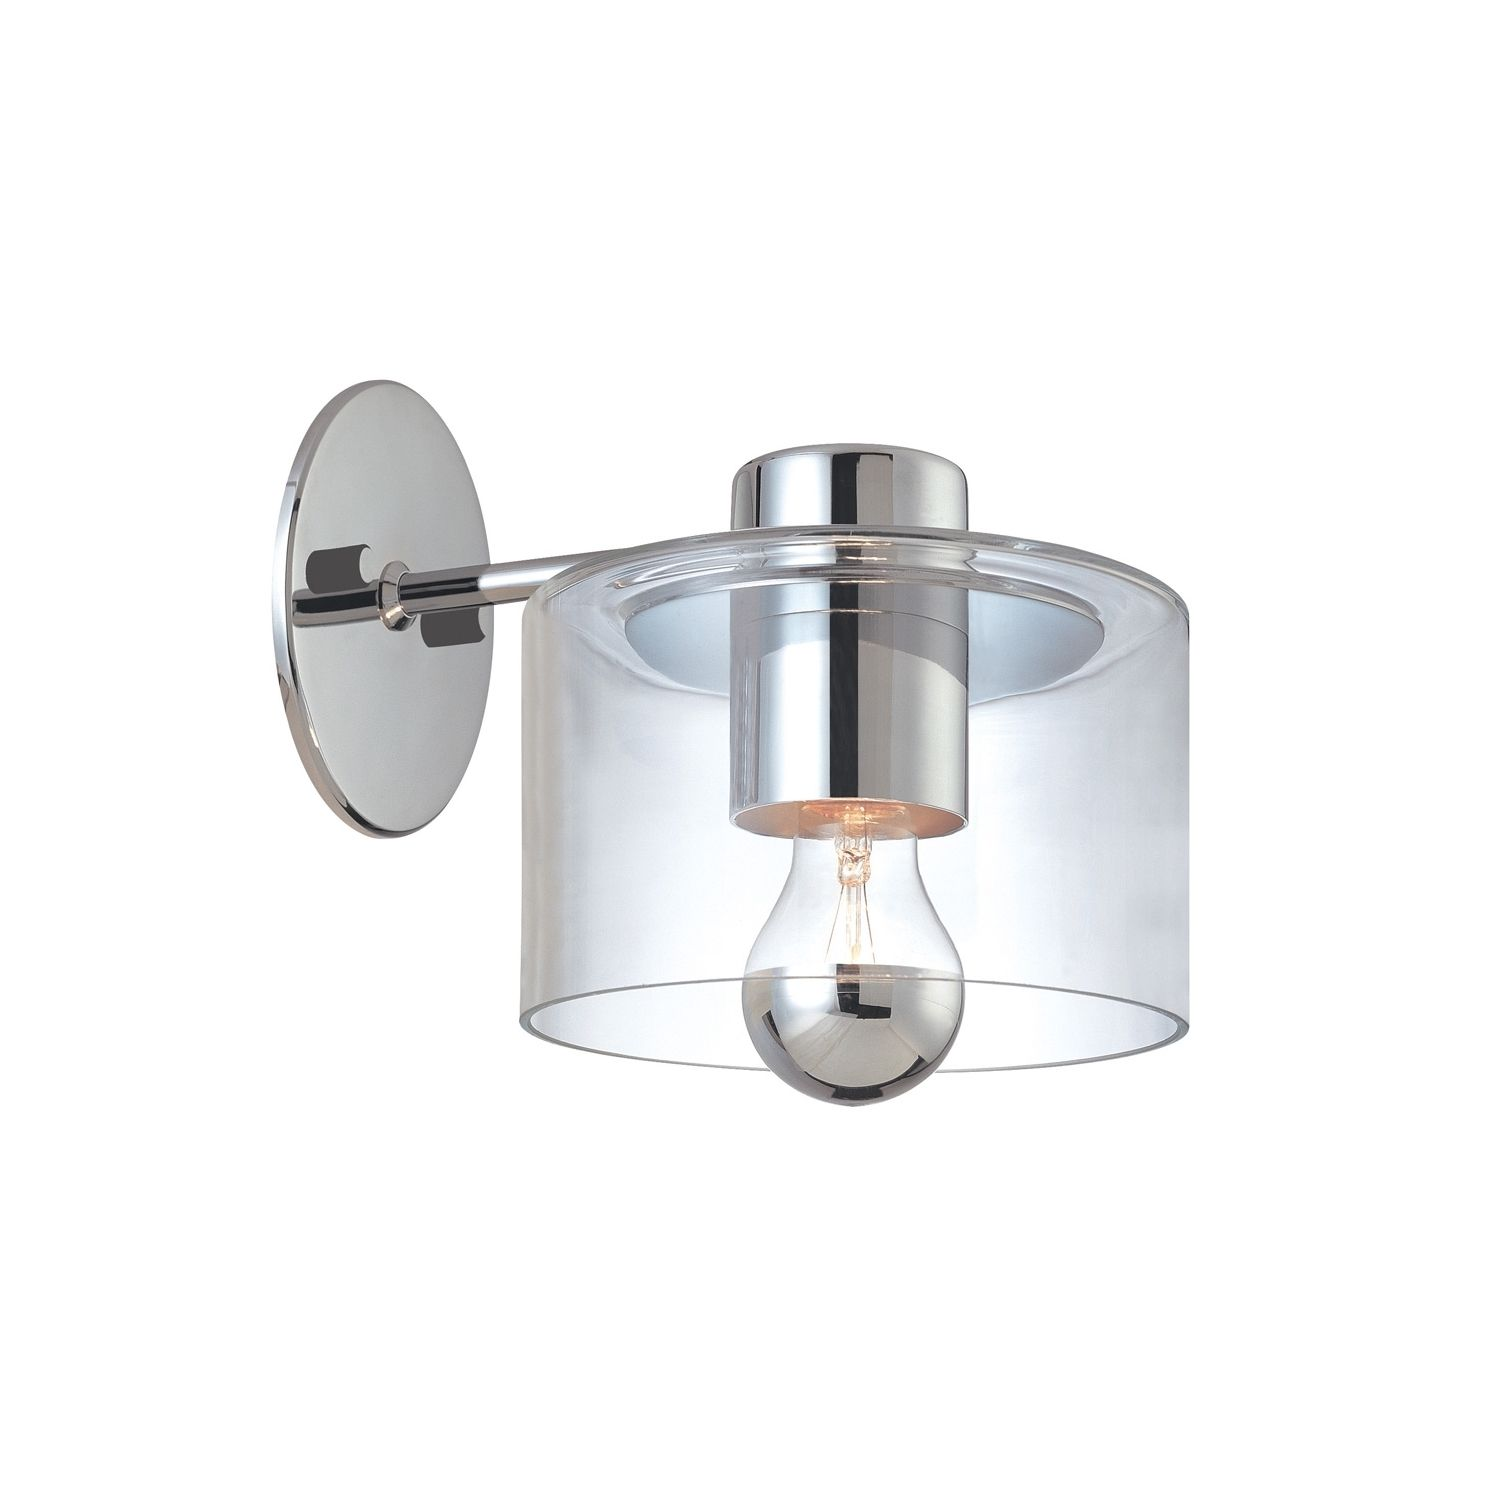 Transparence 1-Light Wall Sconce Extension comes in a polished chrome finish with a clear glass shade.